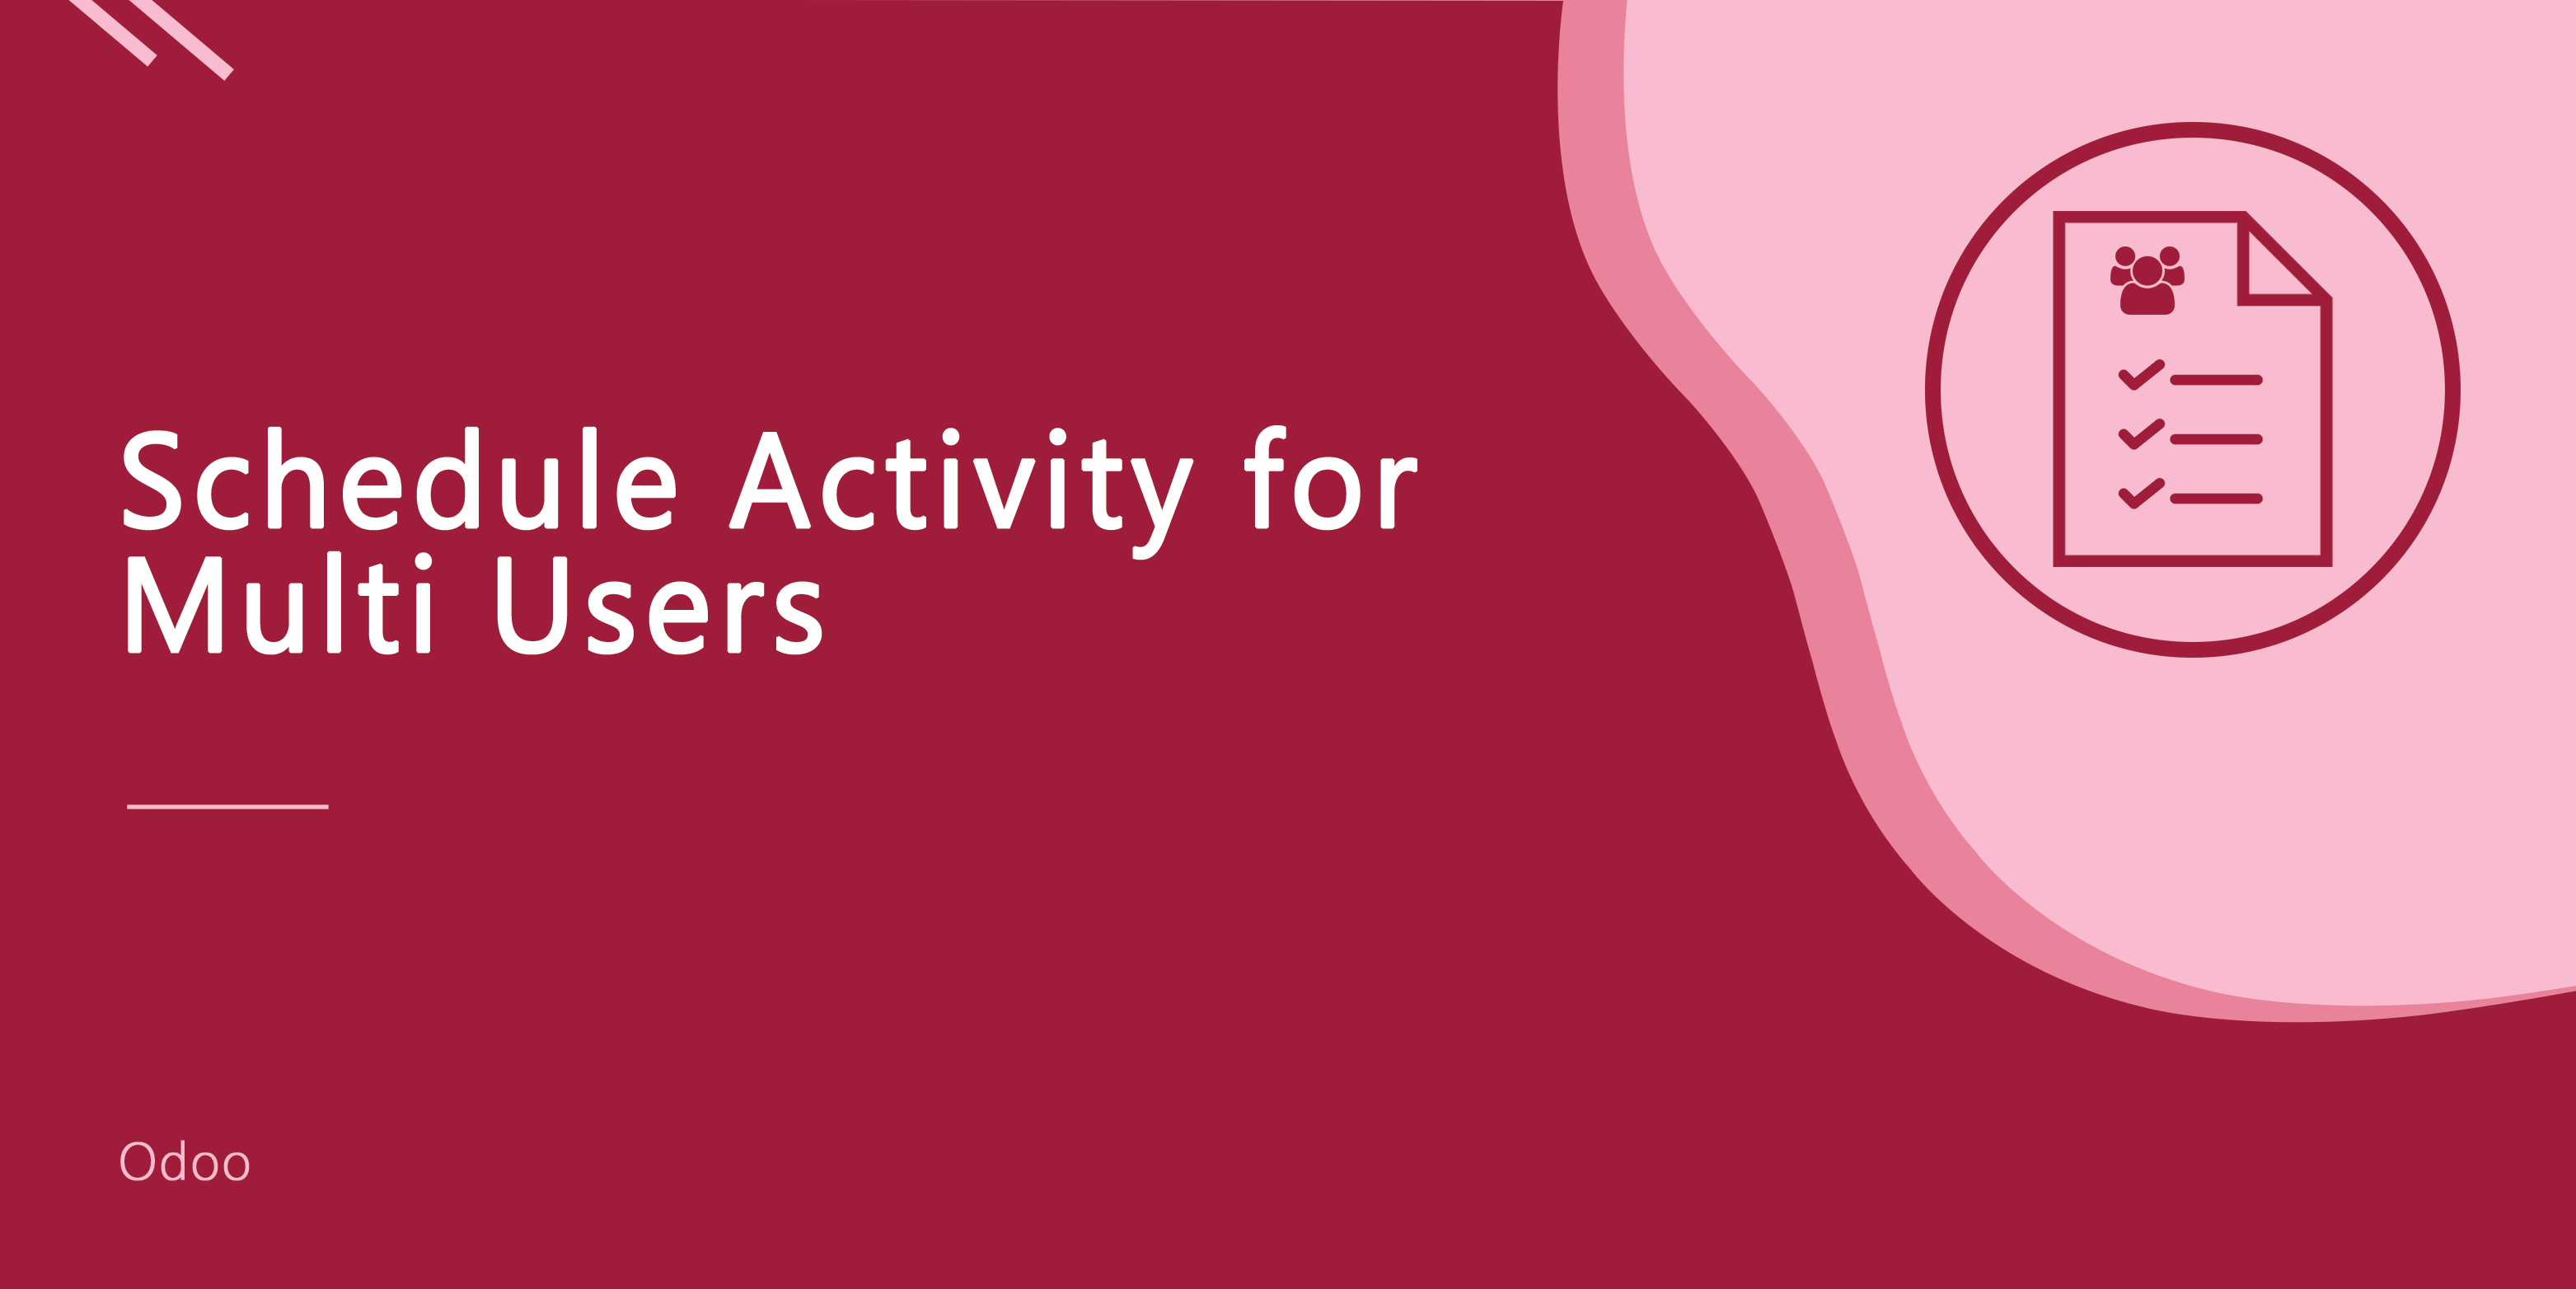 Schedule Activity for Multi Users